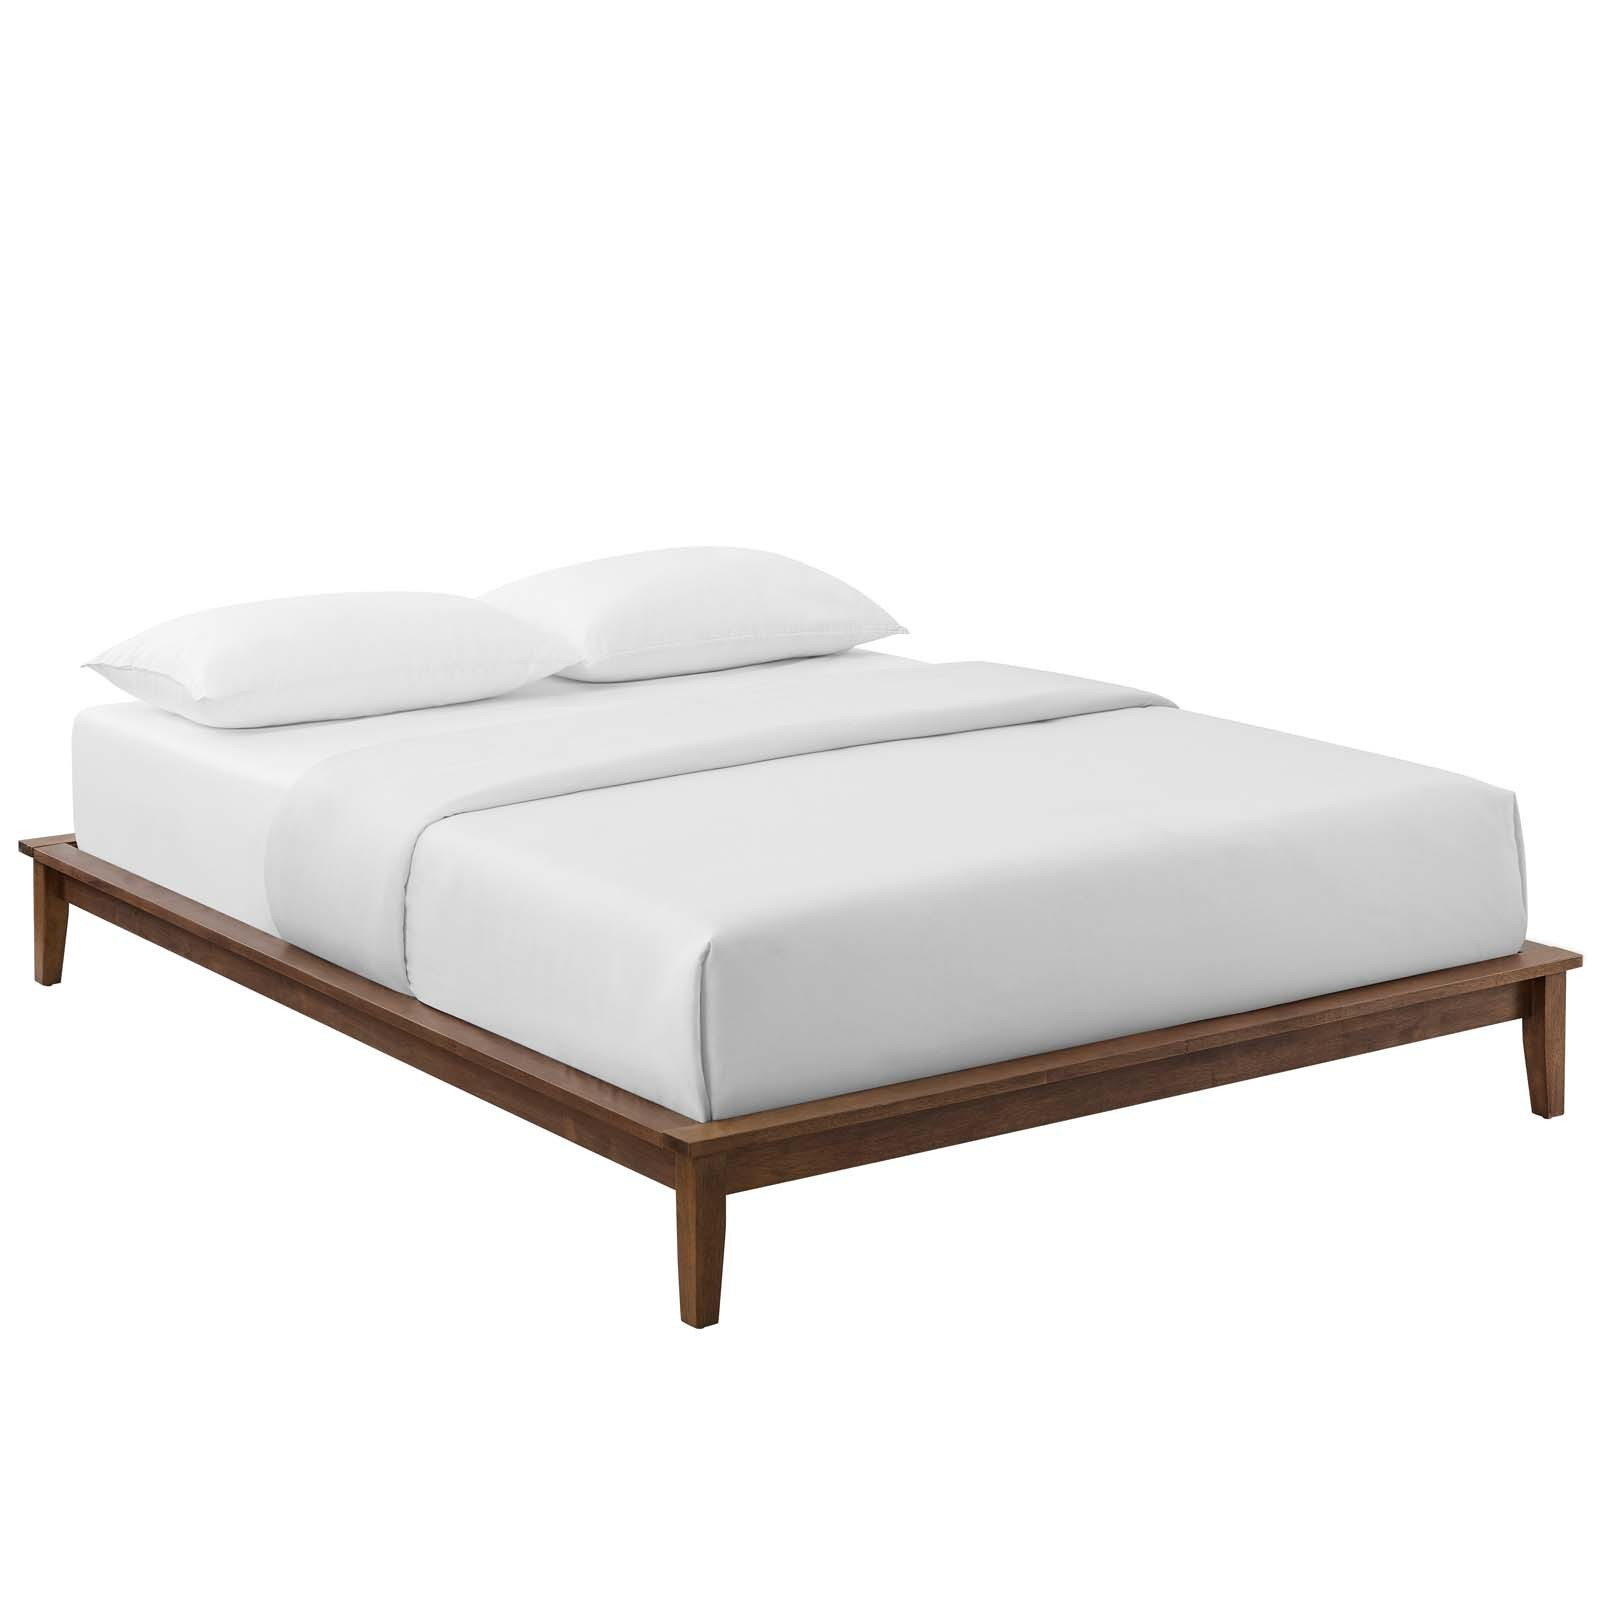 Lodge Queen Wood Platform Bed Frame